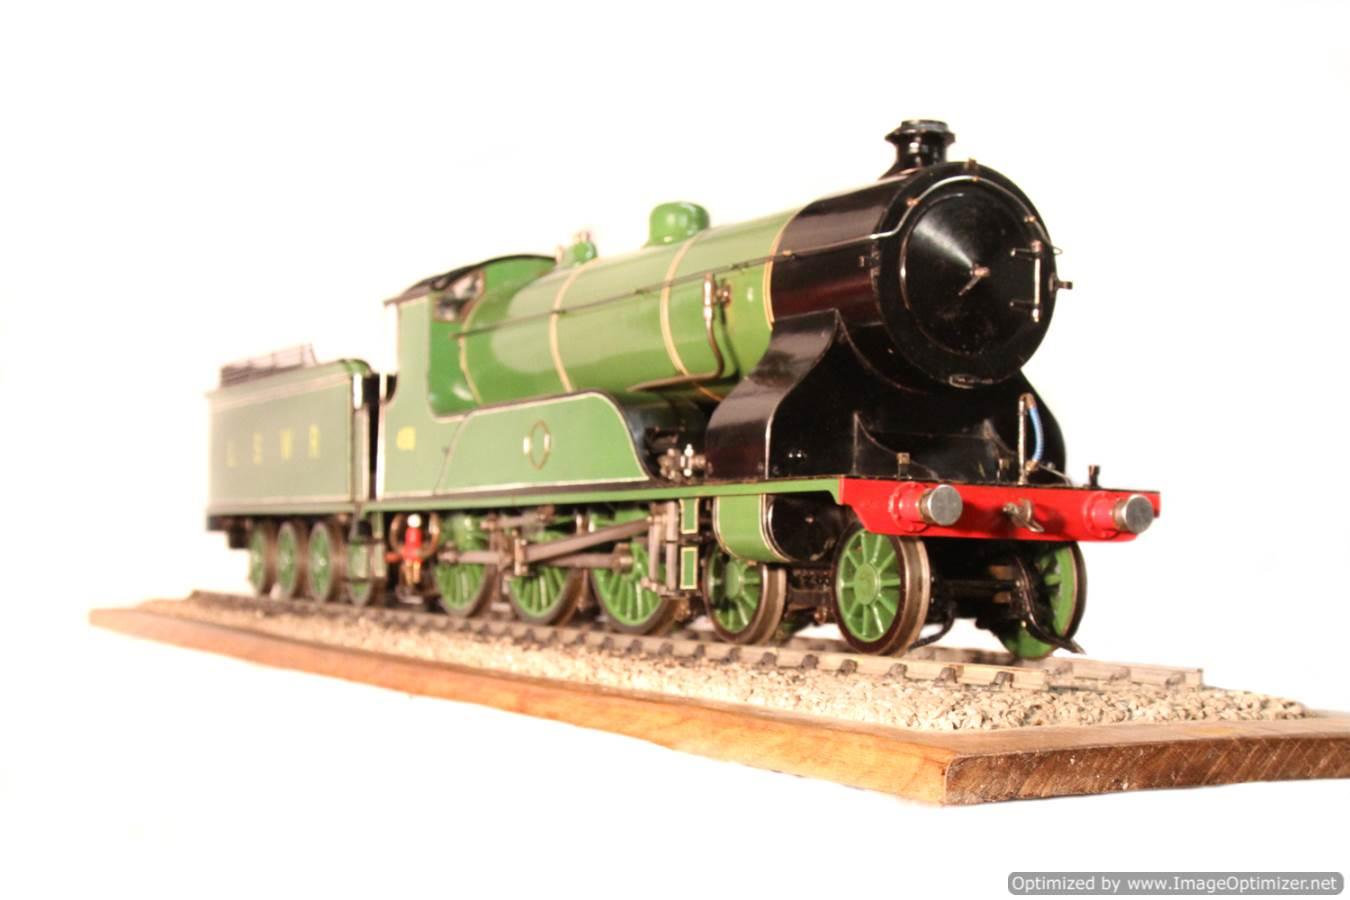 test paddlebox-locomotive-for-sale-01-optimized-copy